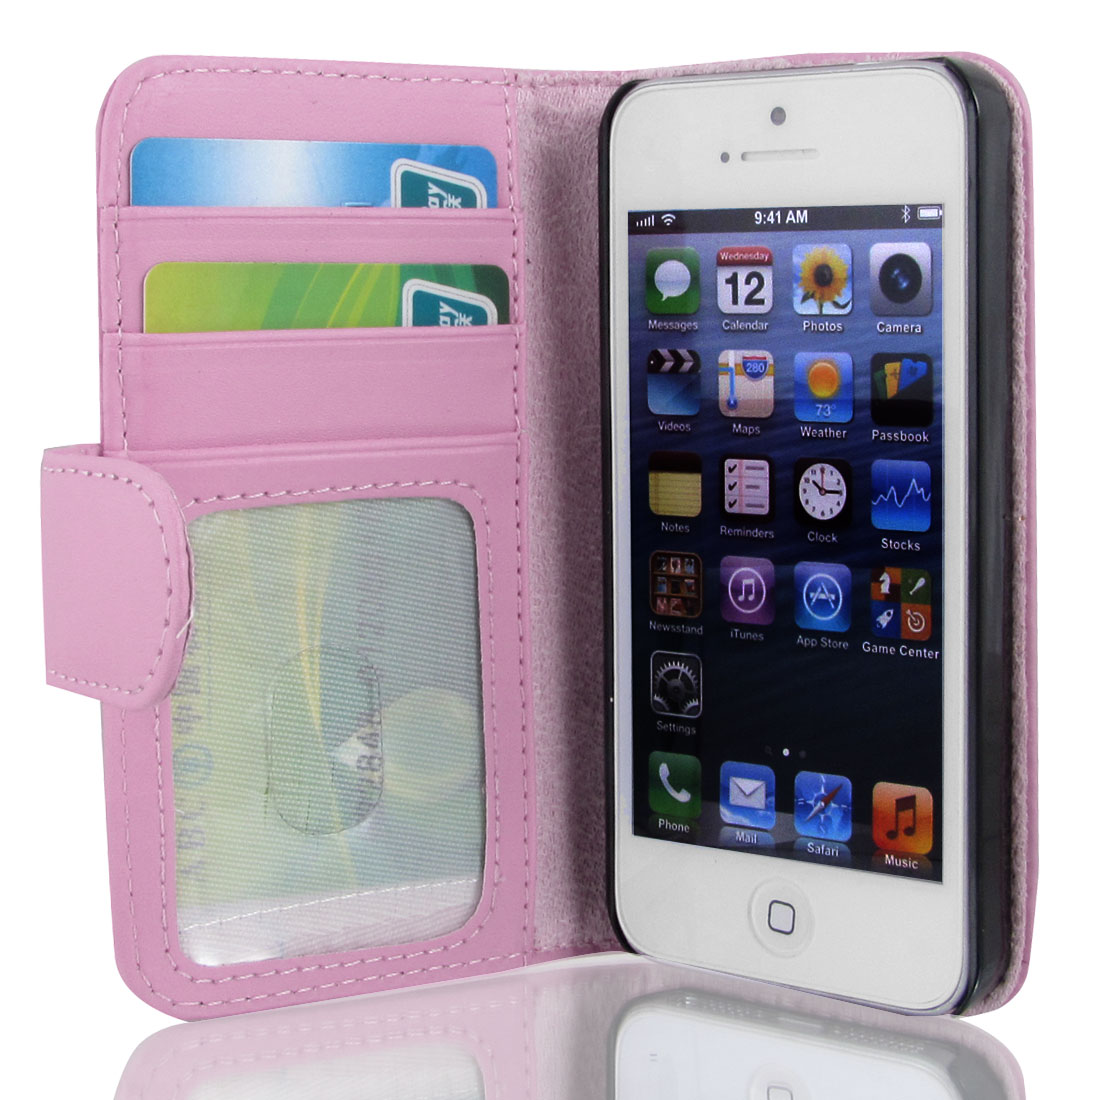 Unique Bargains Pink Faux Leather Protective Flip Cover Case Pouch Wallet for iPhone 5 5G 5th